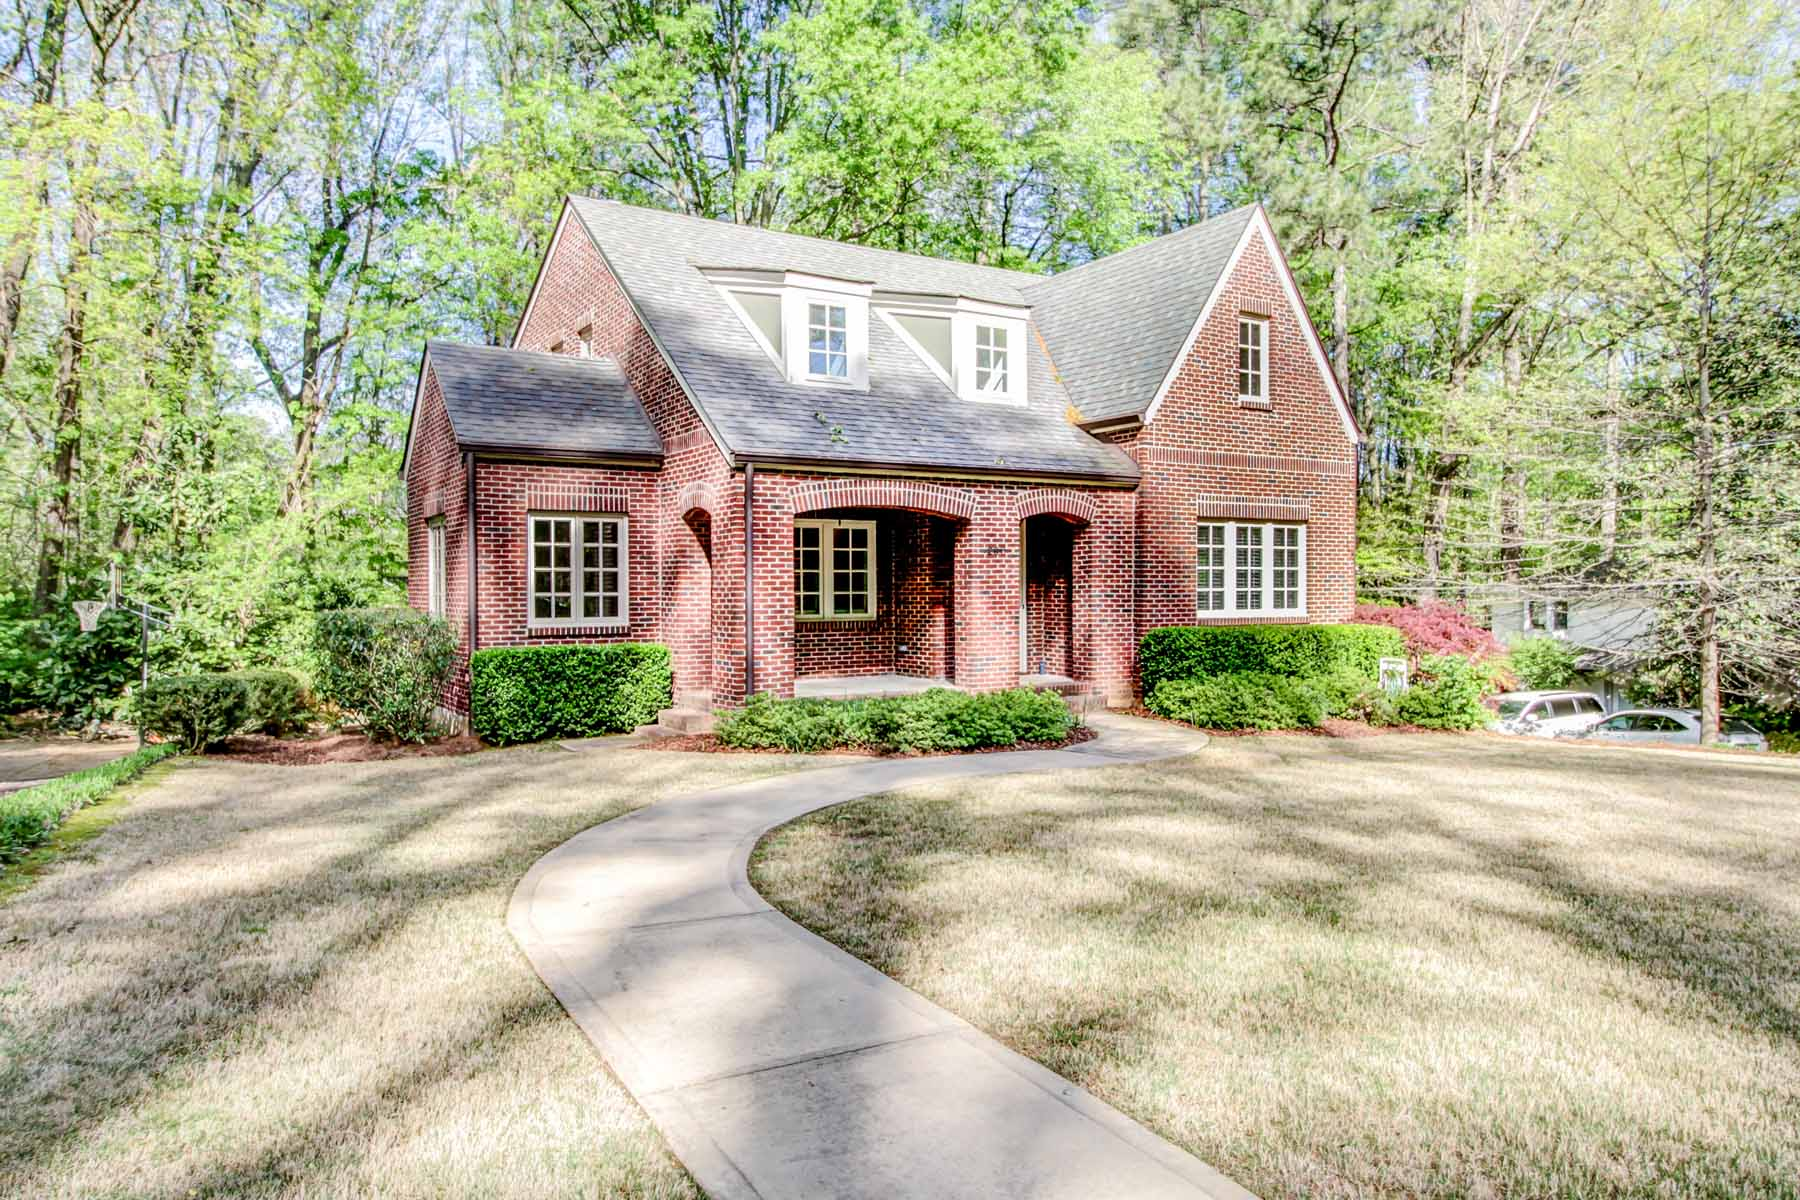 Single Family Home for Sale at Unusual Opportunity for Newer Home in Historic Druid Hills! 296 Vickers Drive NE Druid Hills, Atlanta, Georgia, 30307 United States